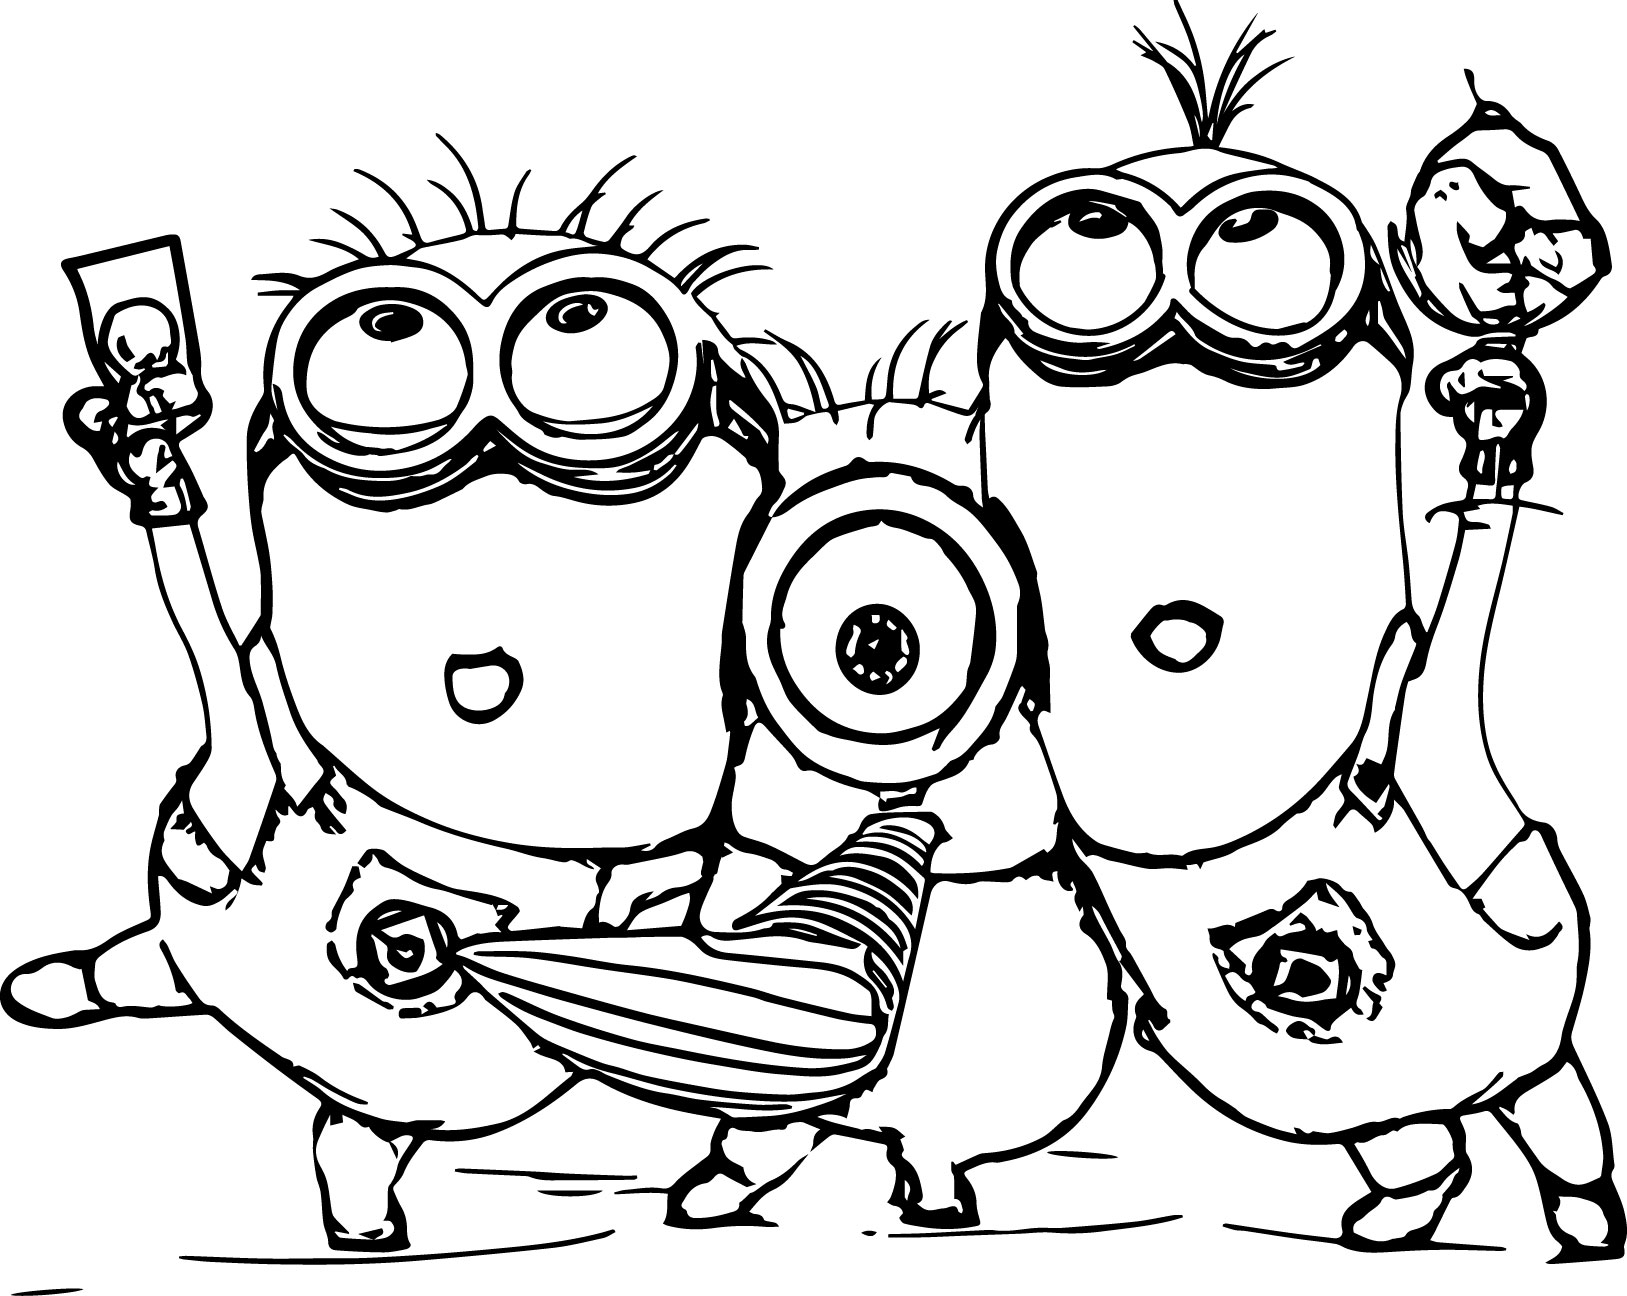 photo relating to Printable Minion Face named Minion Coloring Internet pages - Excellent Coloring Internet pages For Youngsters